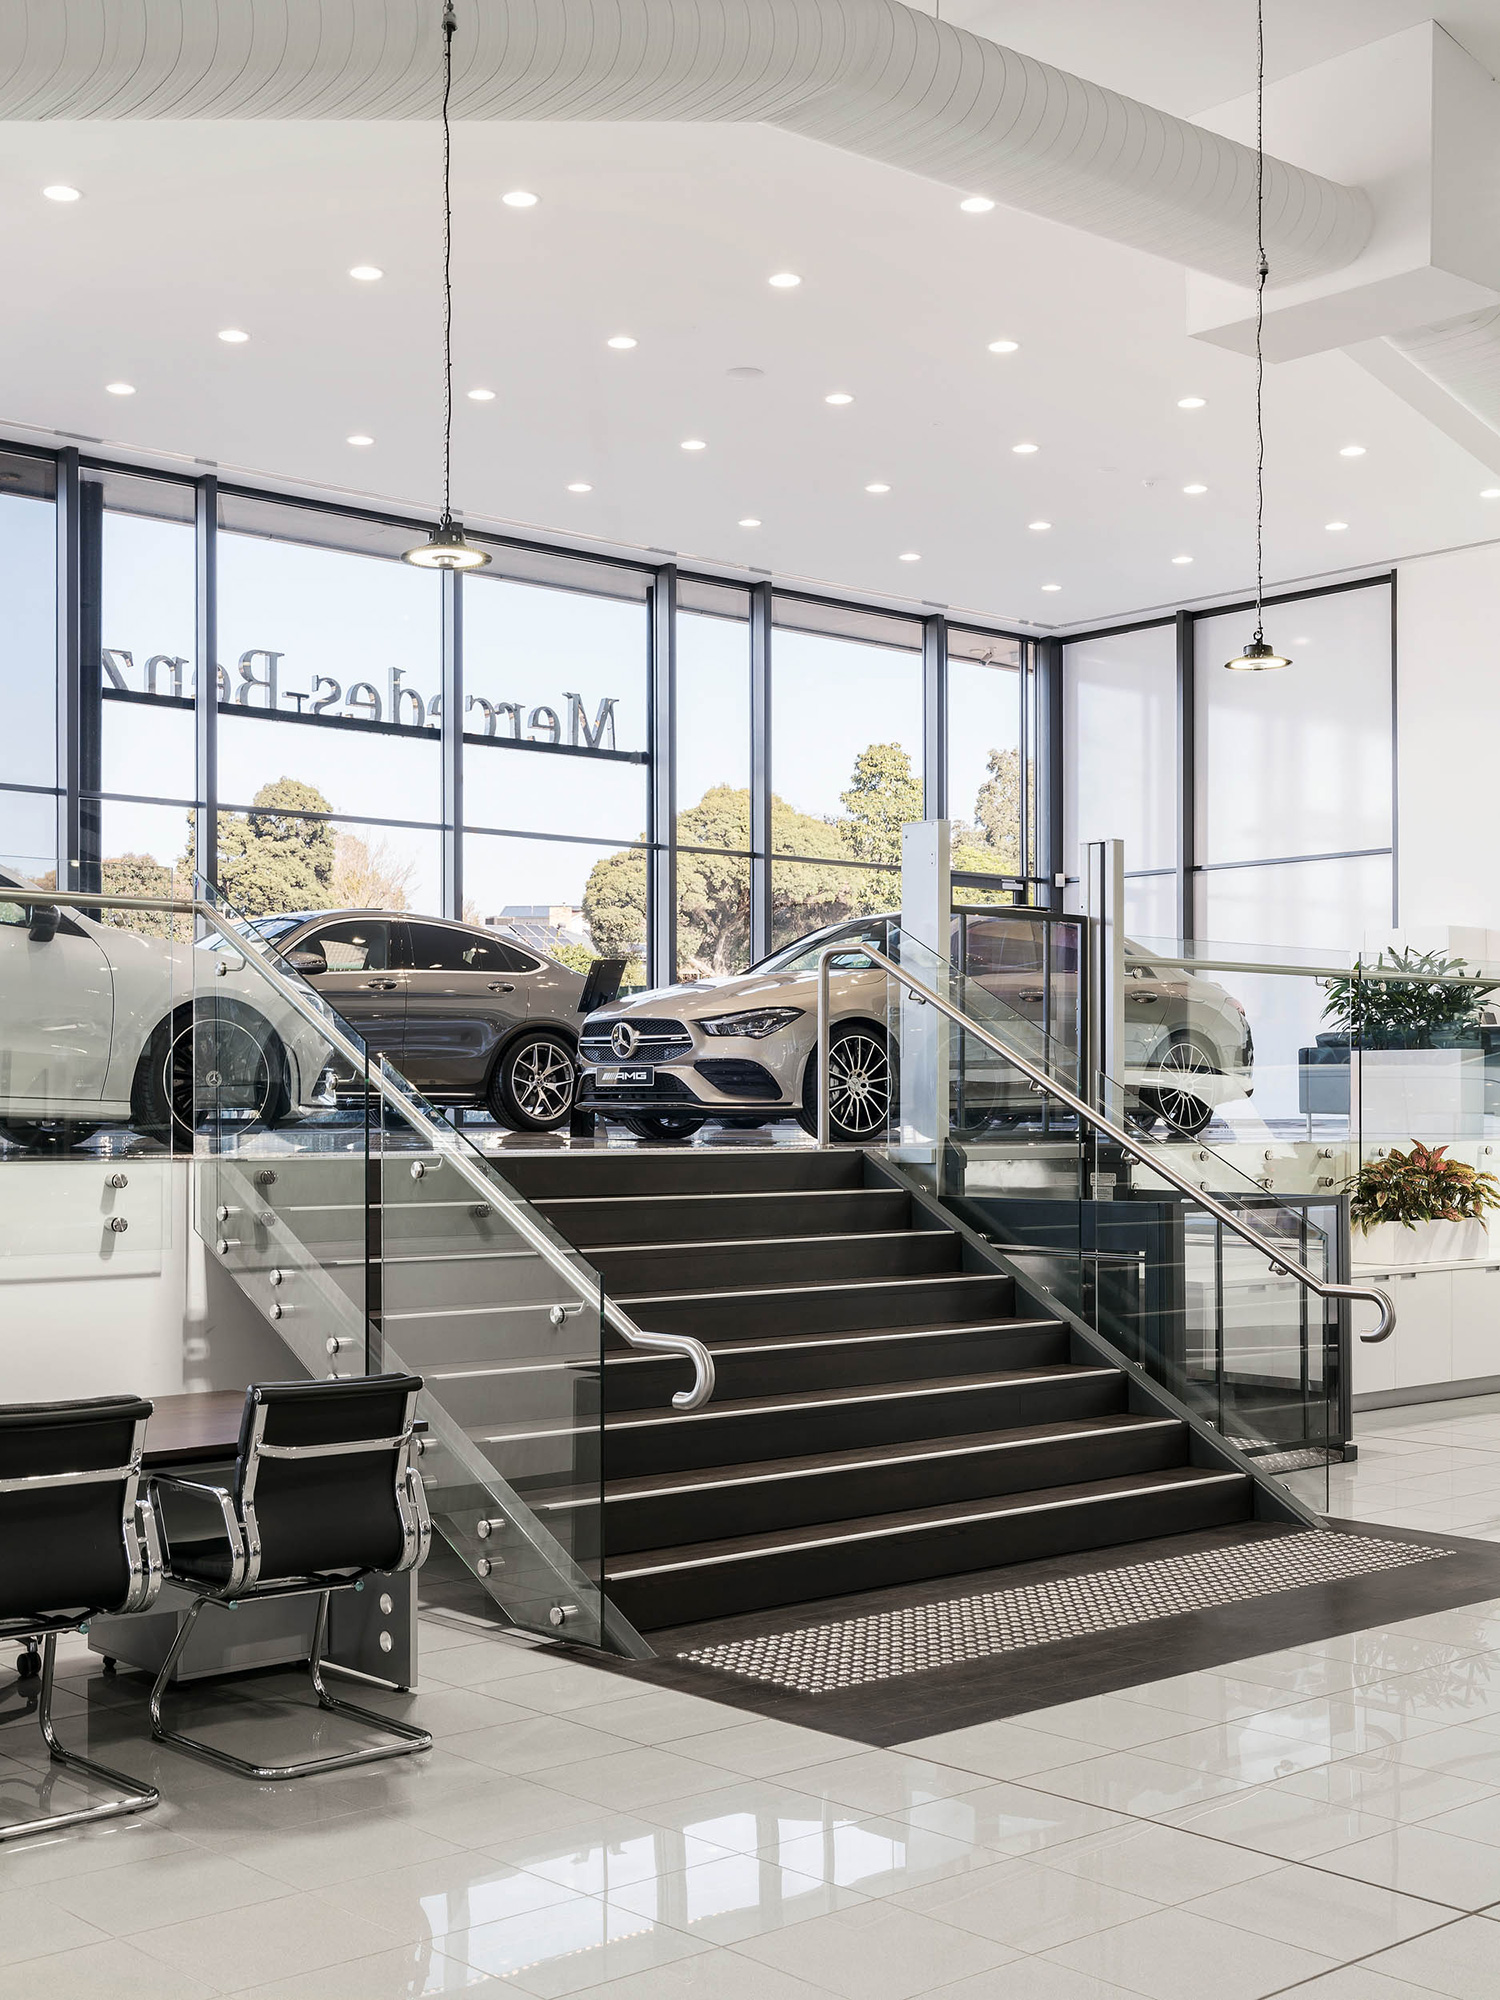 c. kairouz architects commercial interior design for car dealership showroom fitout stairs image